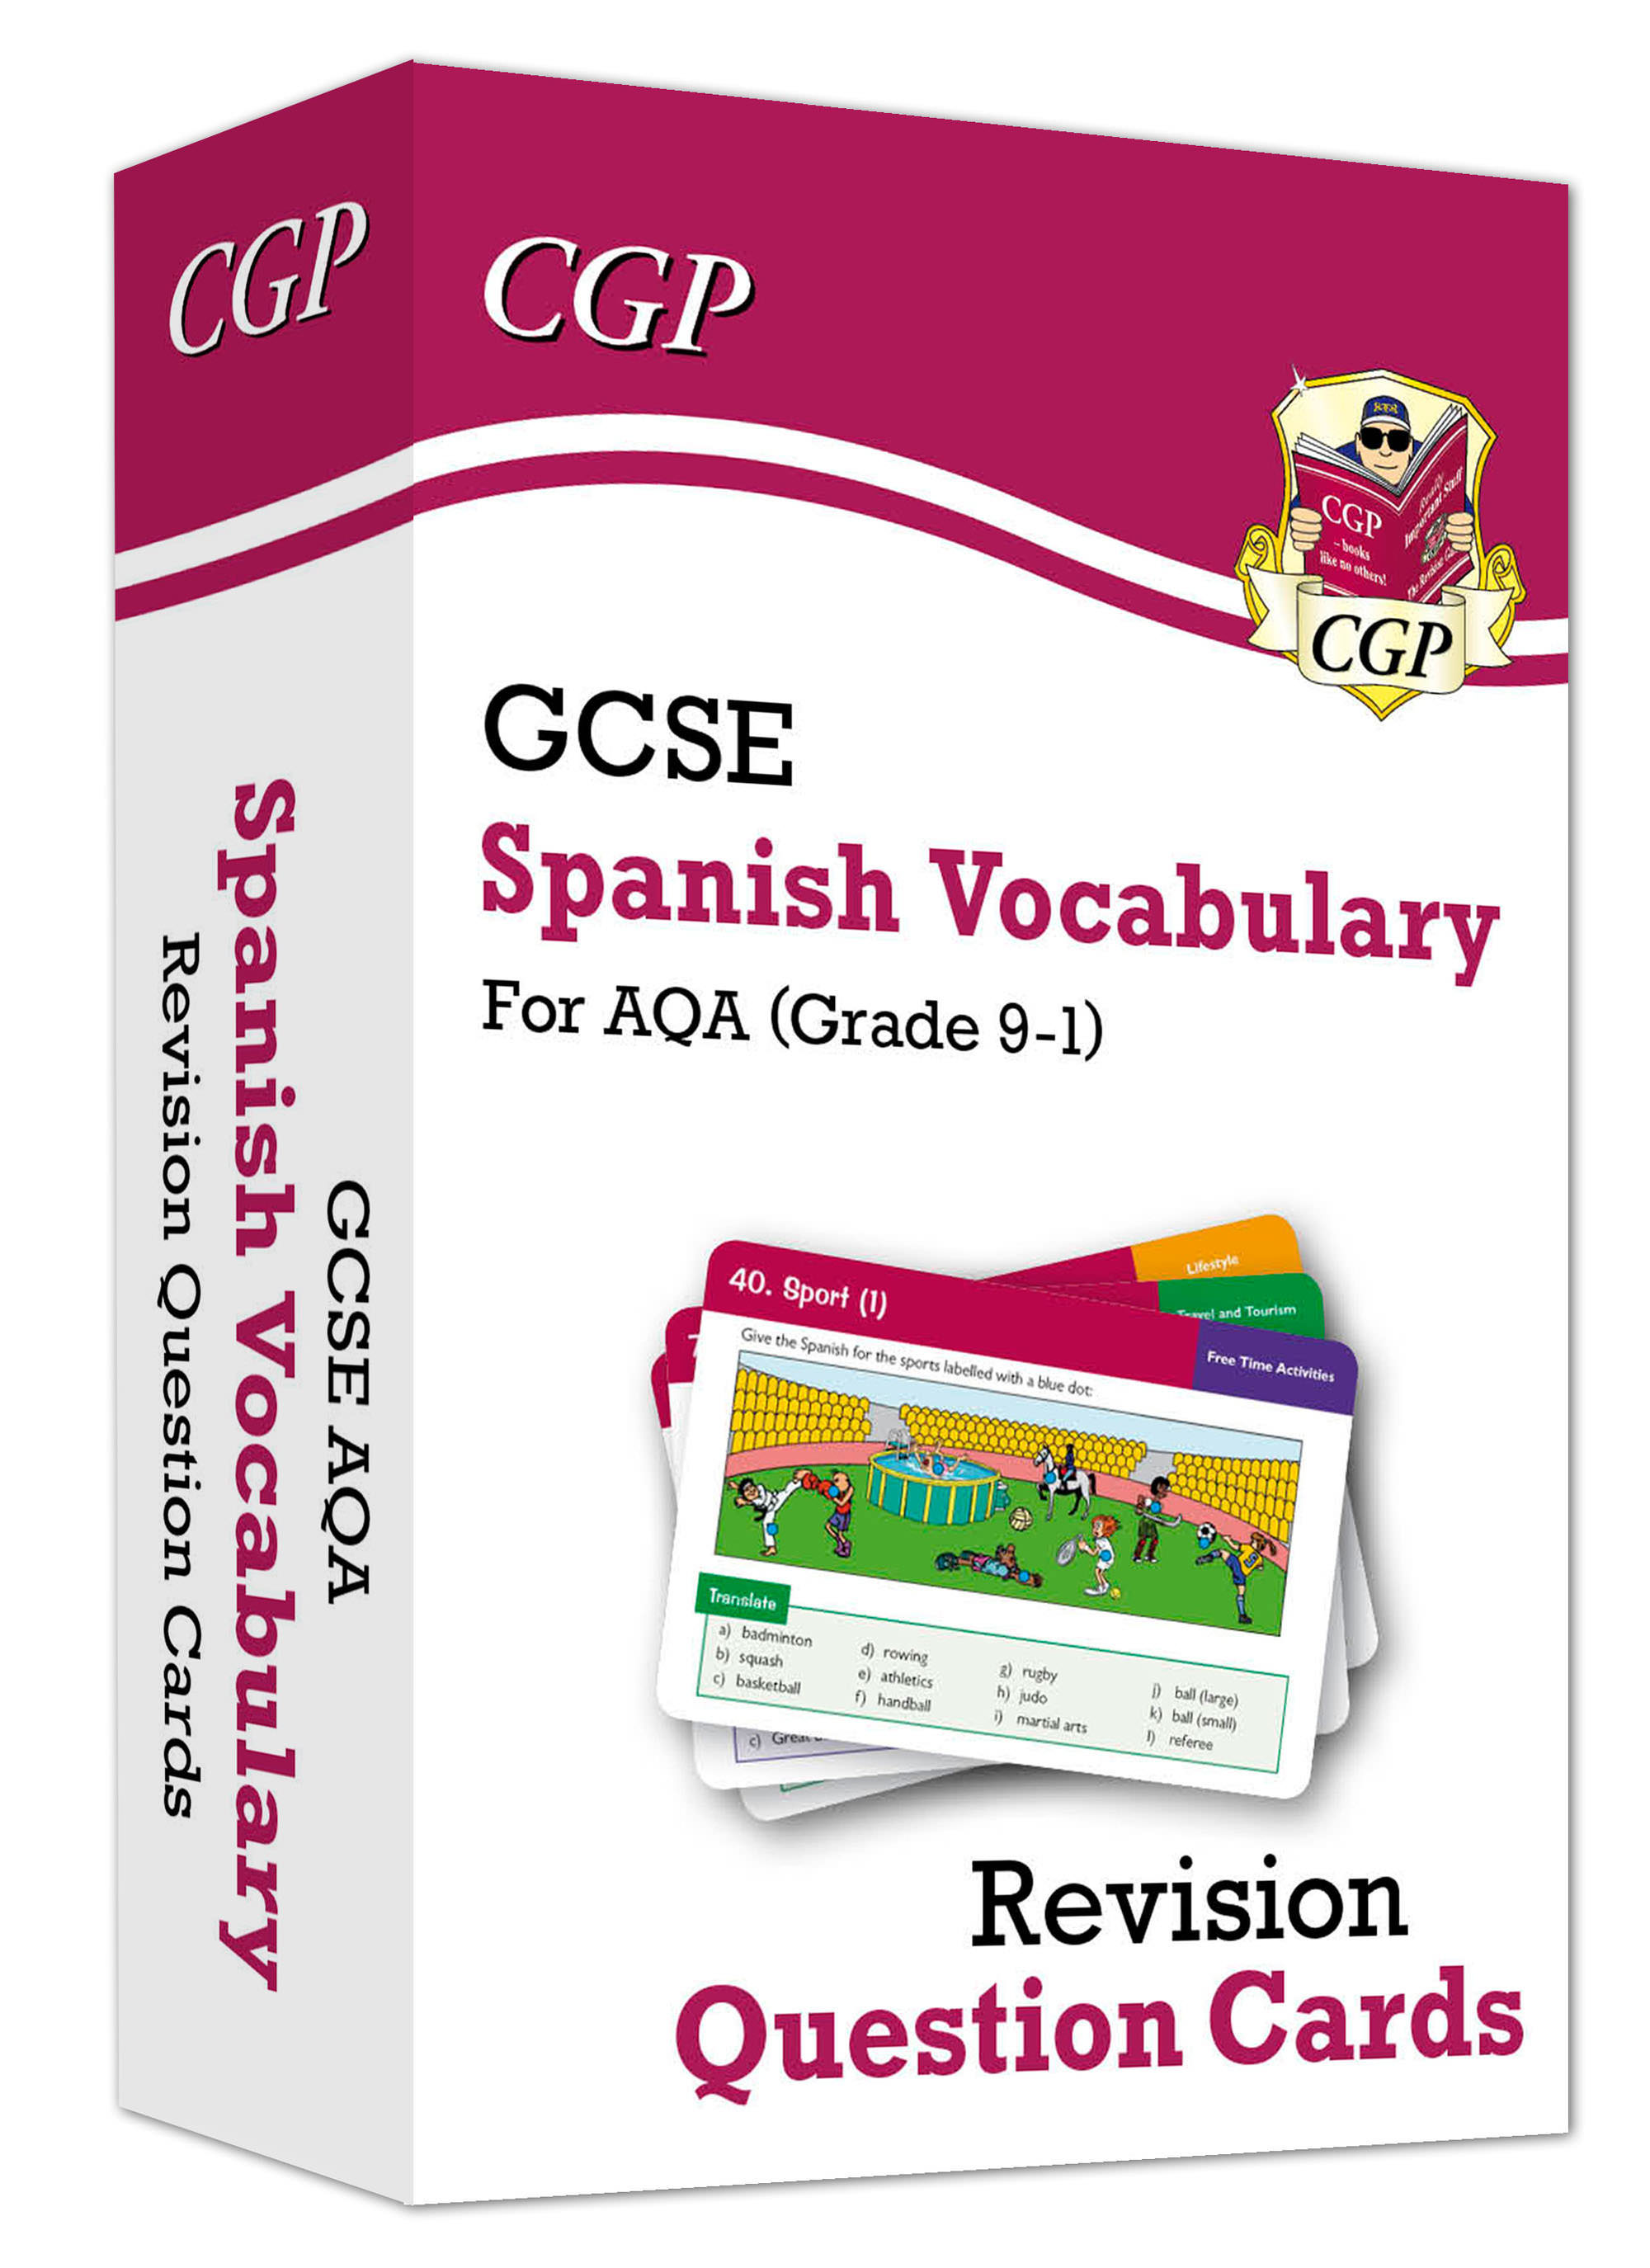 SPAVF41D - New Grade 9-1 GCSE AQA Spanish: Vocabulary Revision Question Cards Online Edition